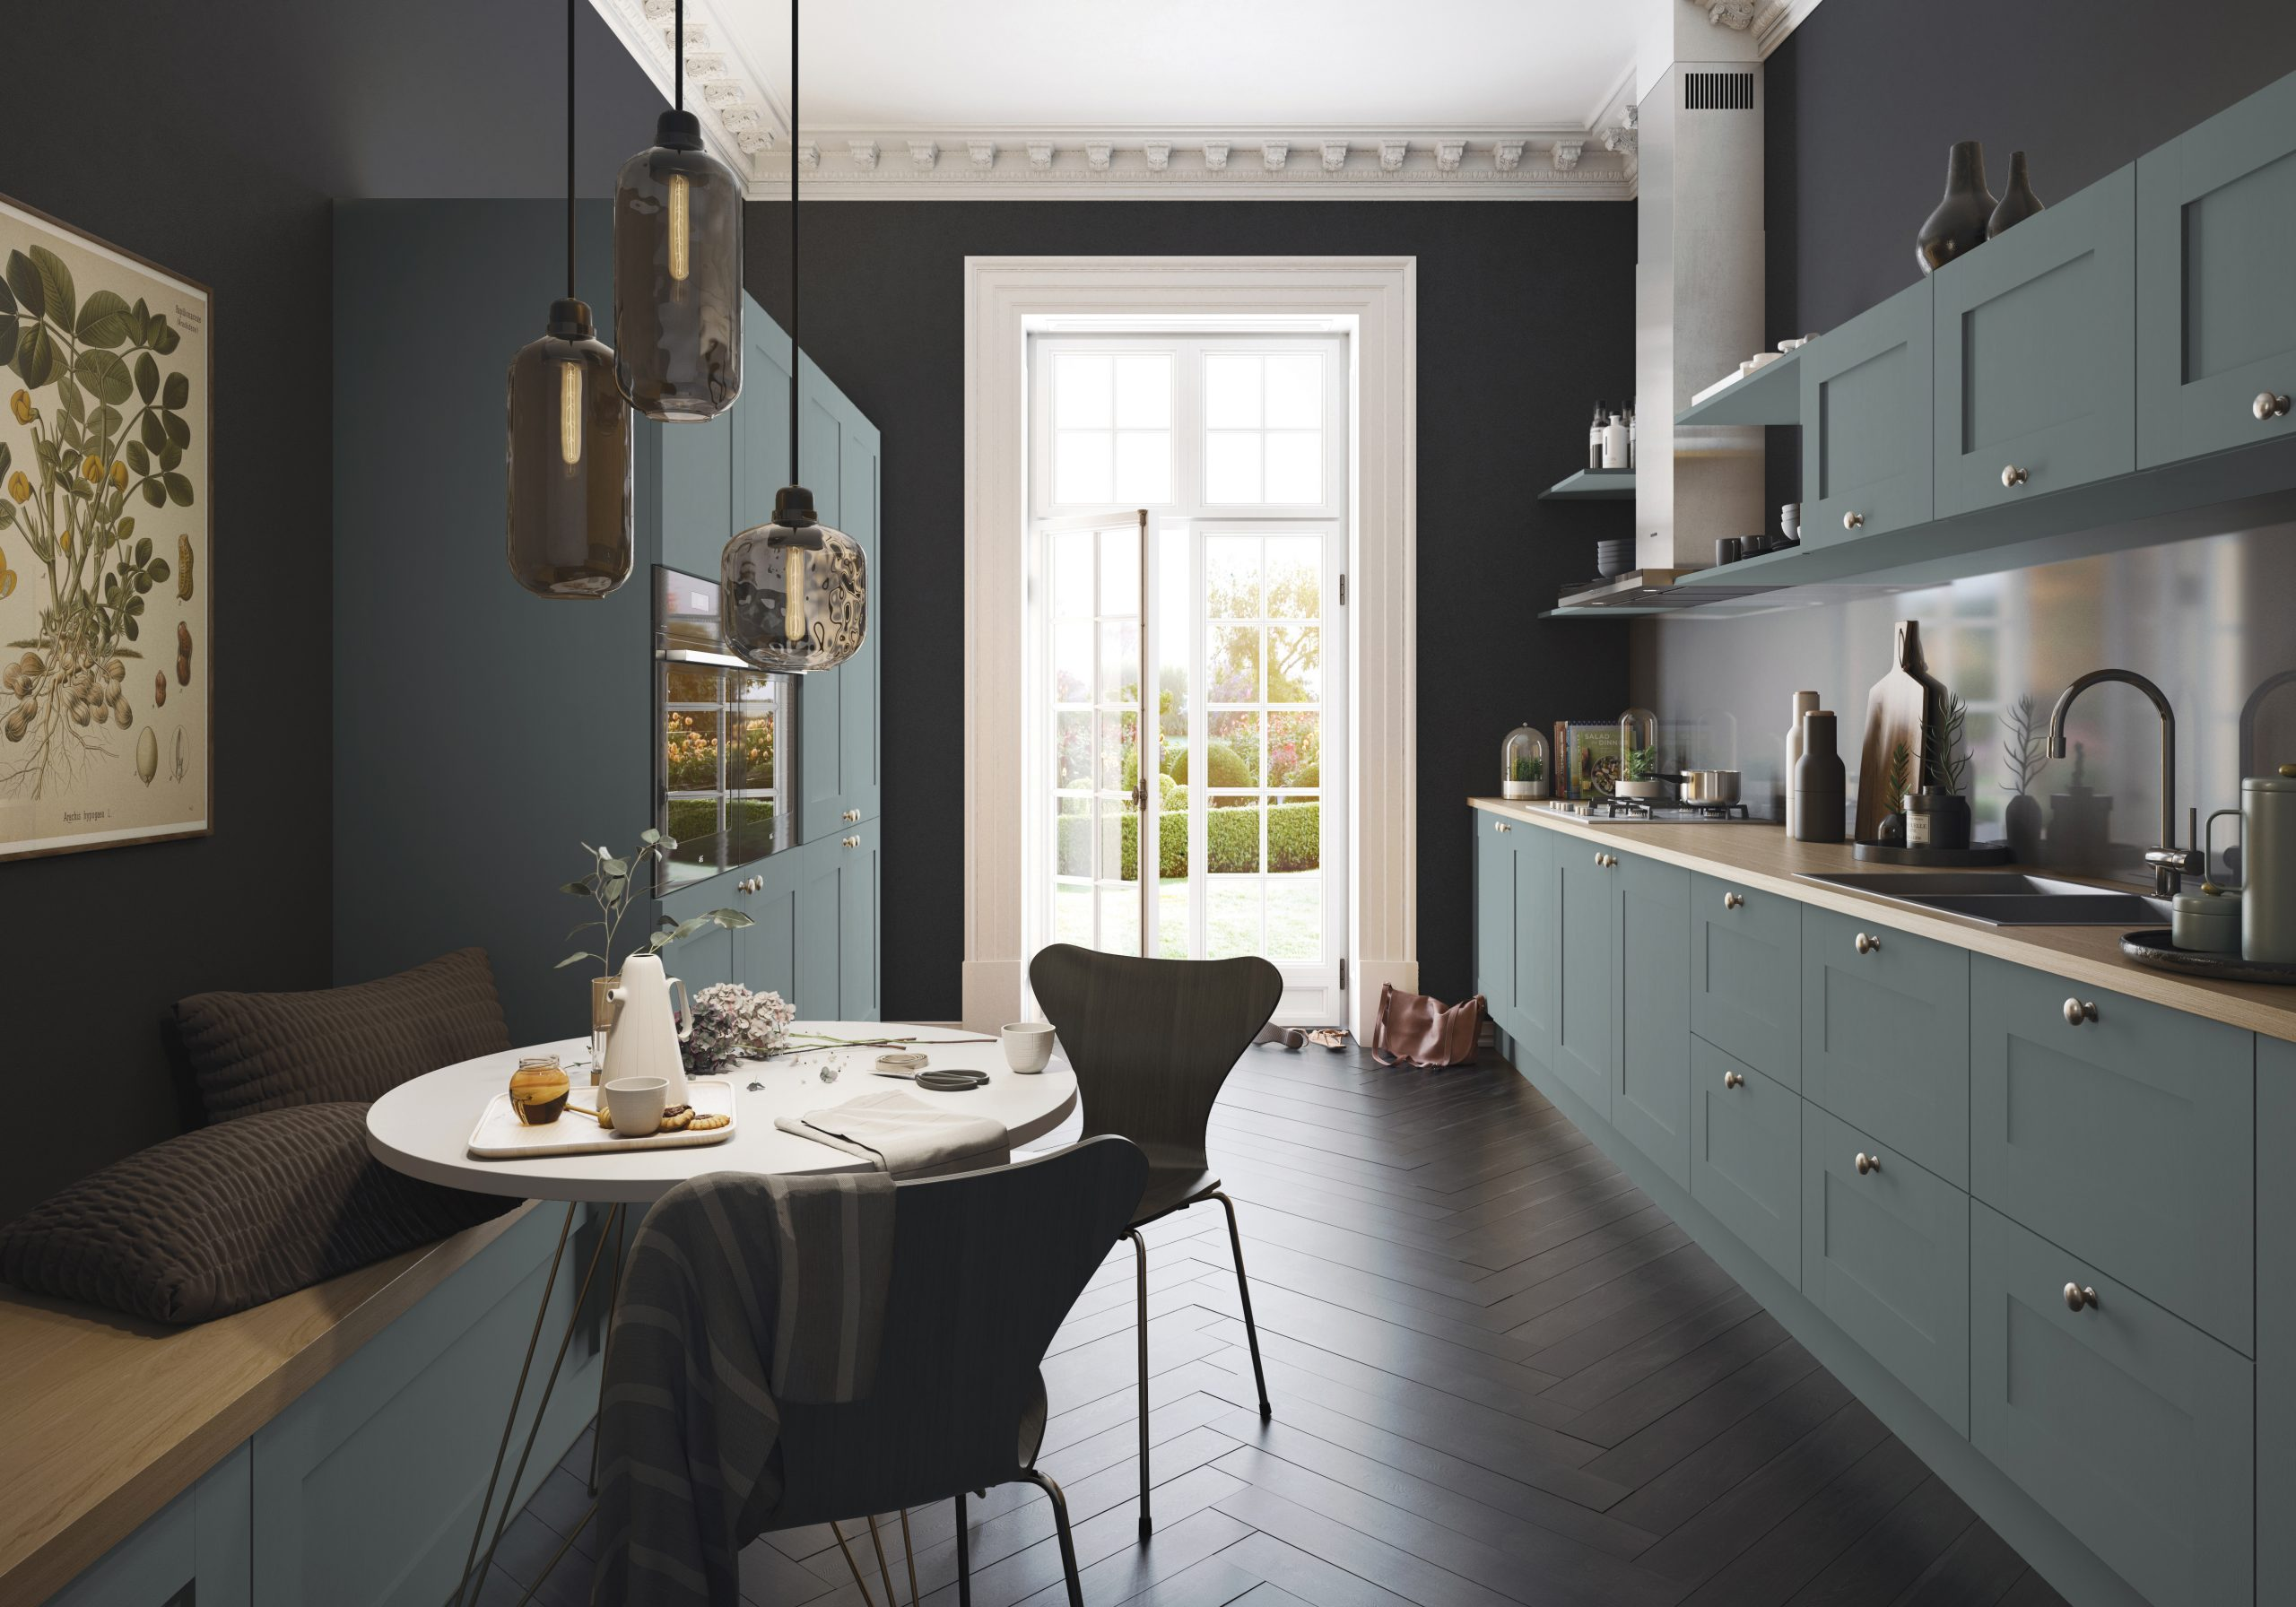 Image of kitchen renovation by Optiplan